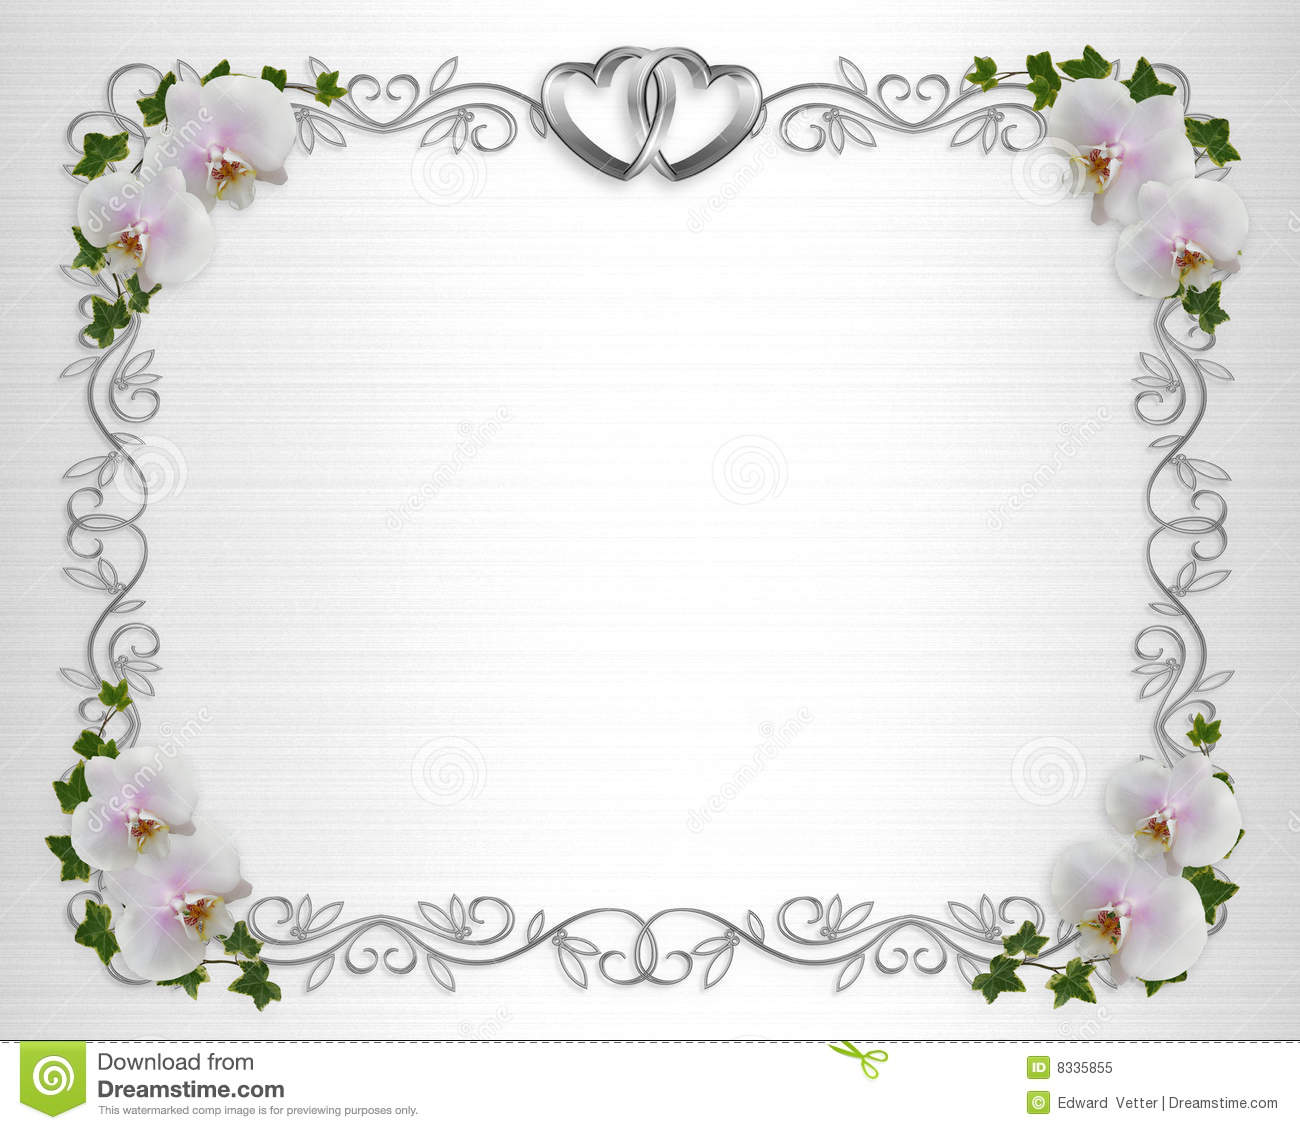 Orchid Wedding Invitations is perfect invitations template